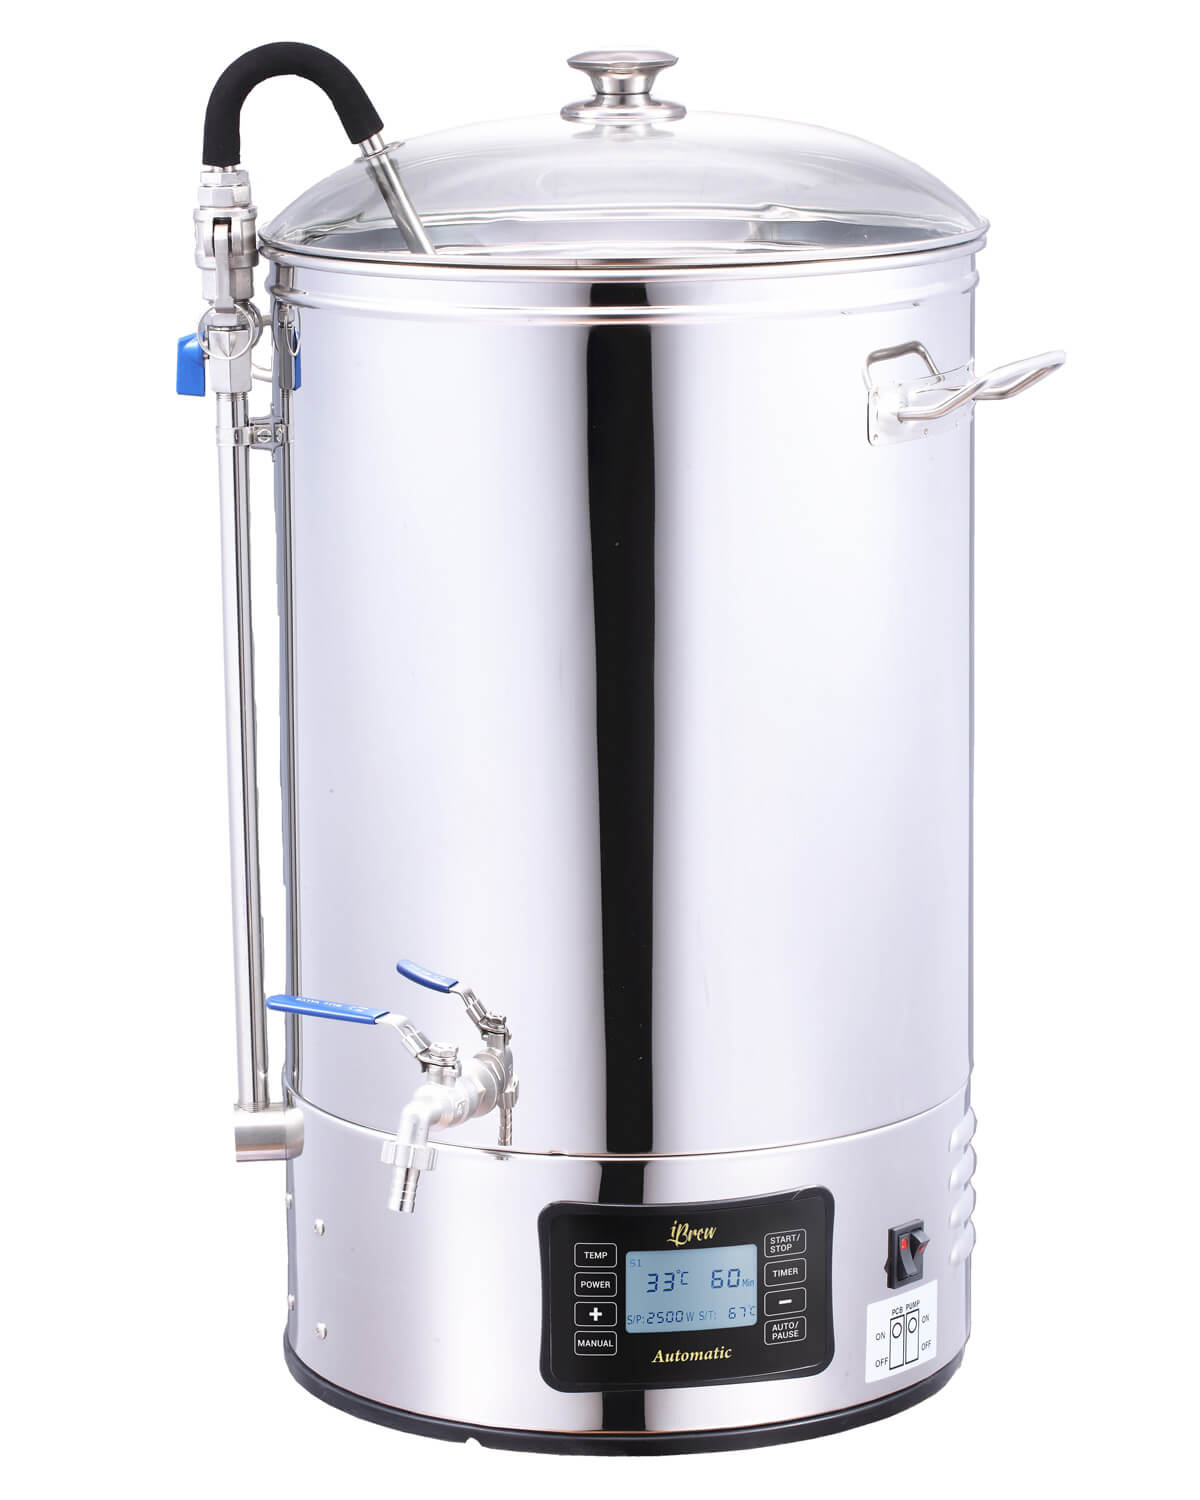 iBrew 50 Mk2  Nový model